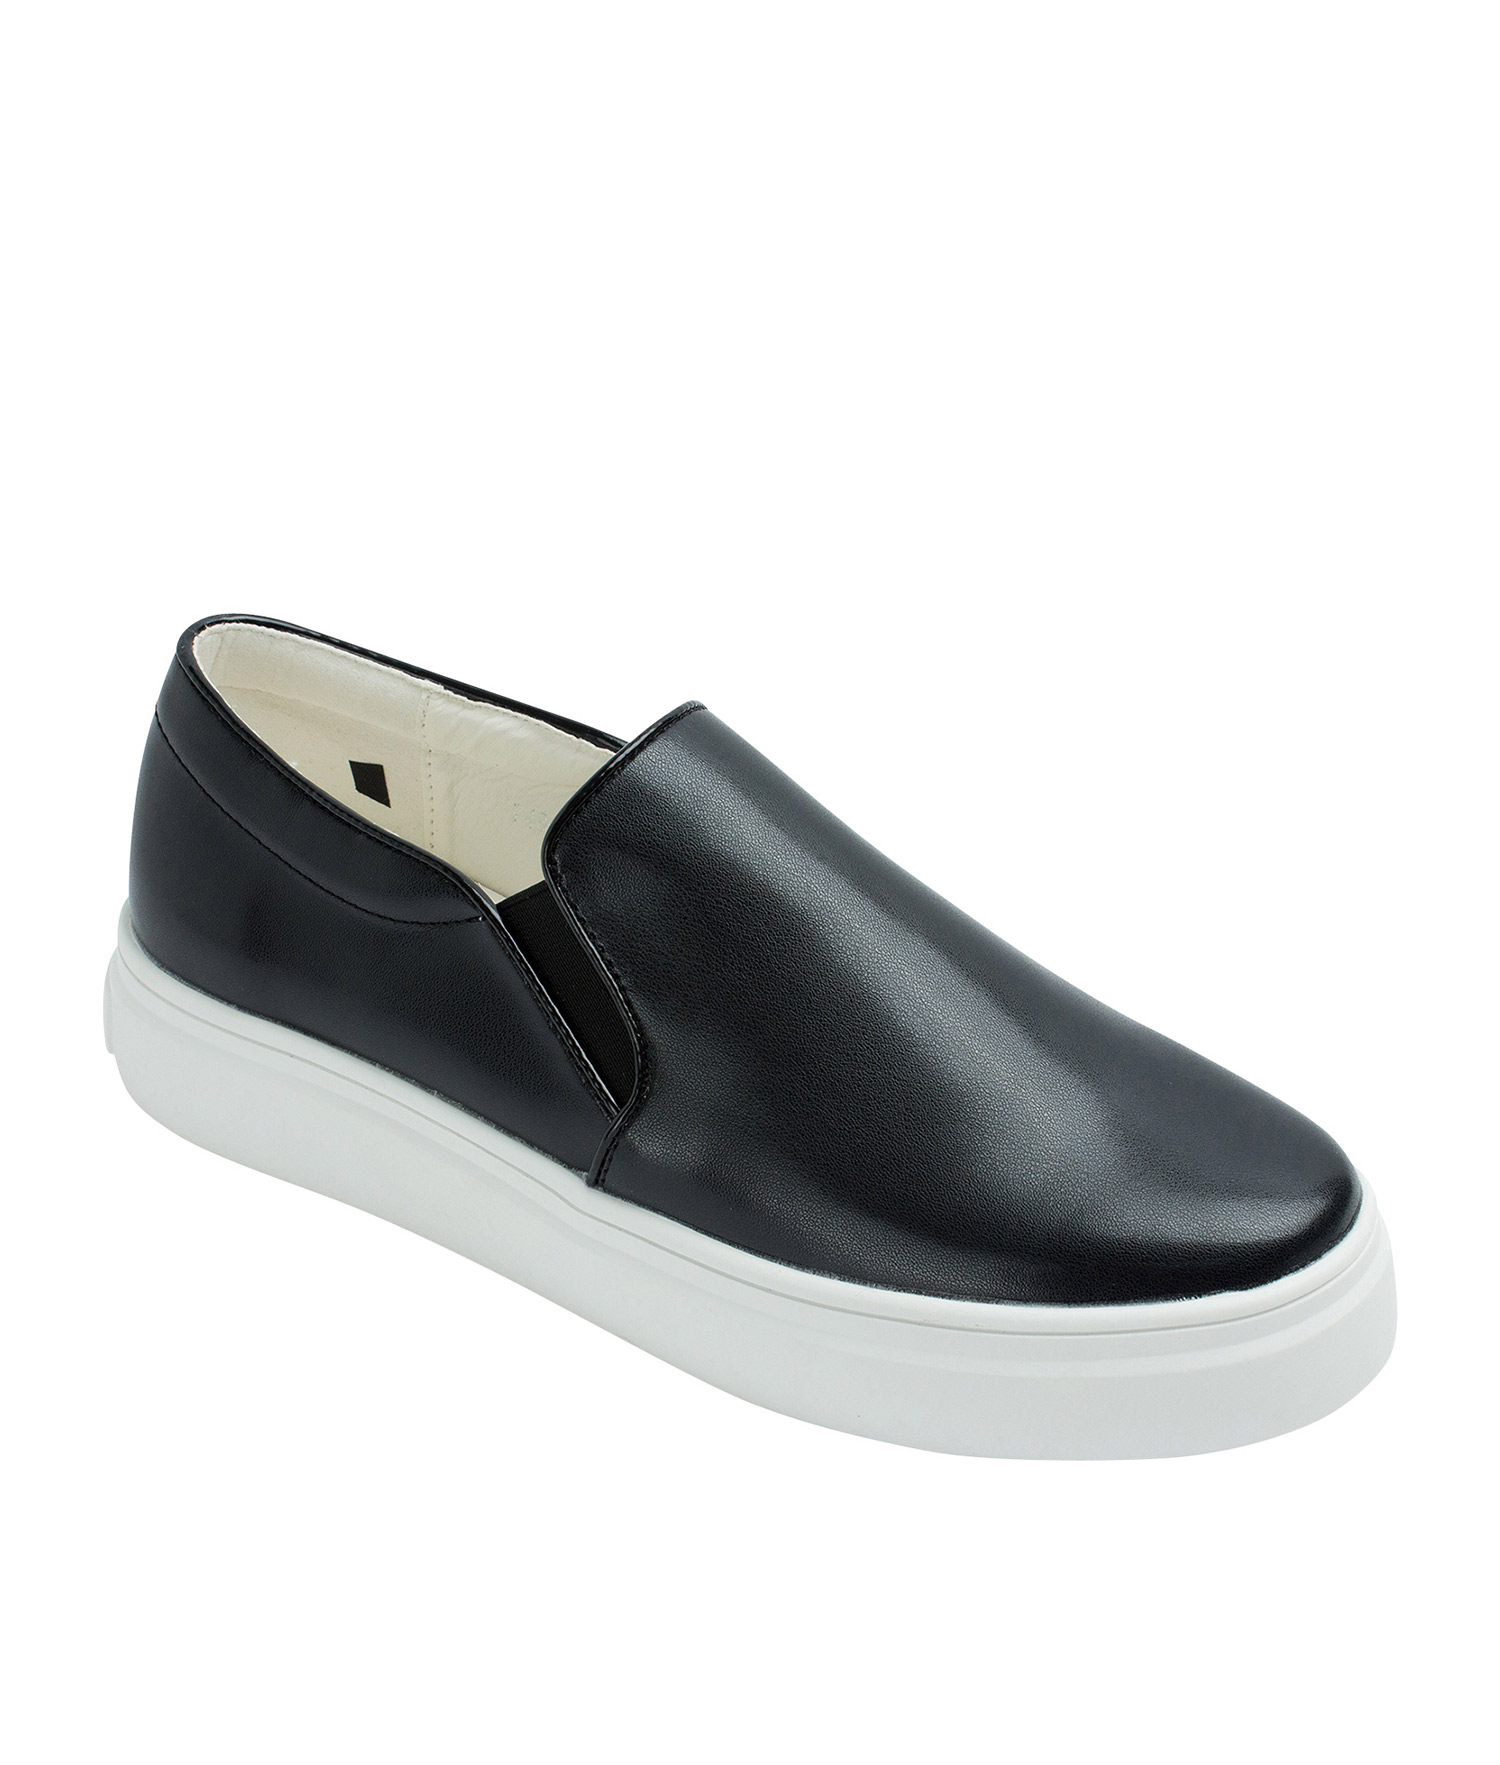 Annakastle Womens Classic Faux Leather Slip-On Sneakers Black